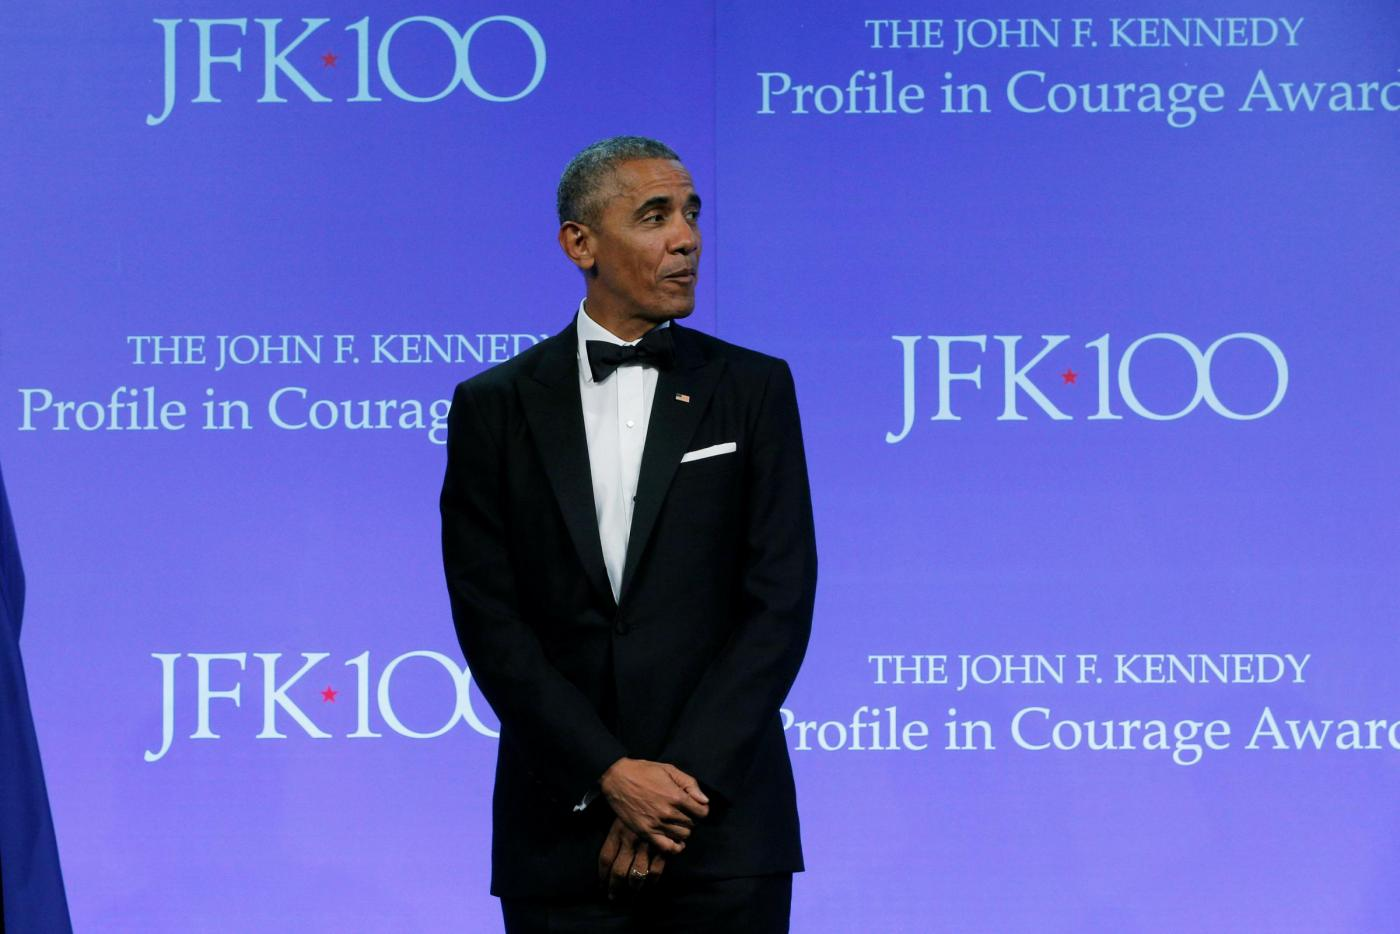 Boston, la cerimonia dei Profile in Courage Award con Barack Obama